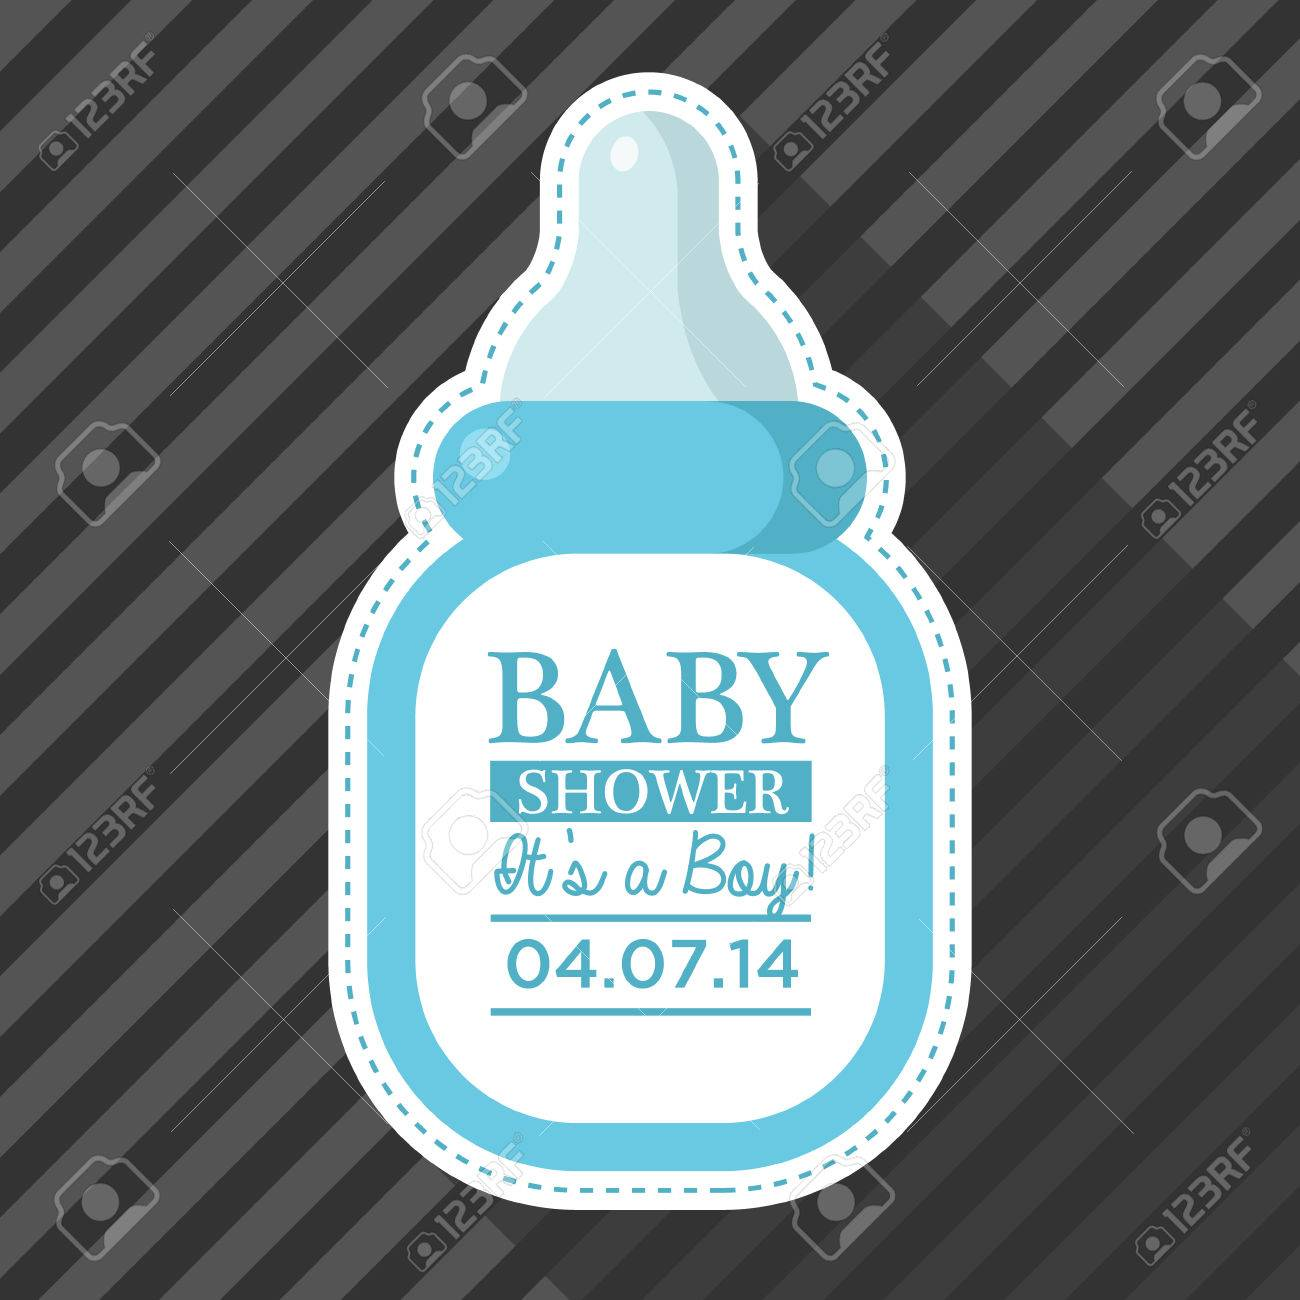 Baby shower invitation with baby bottle royalty free cliparts baby shower invitation with baby bottle stock vector 28515631 filmwisefo